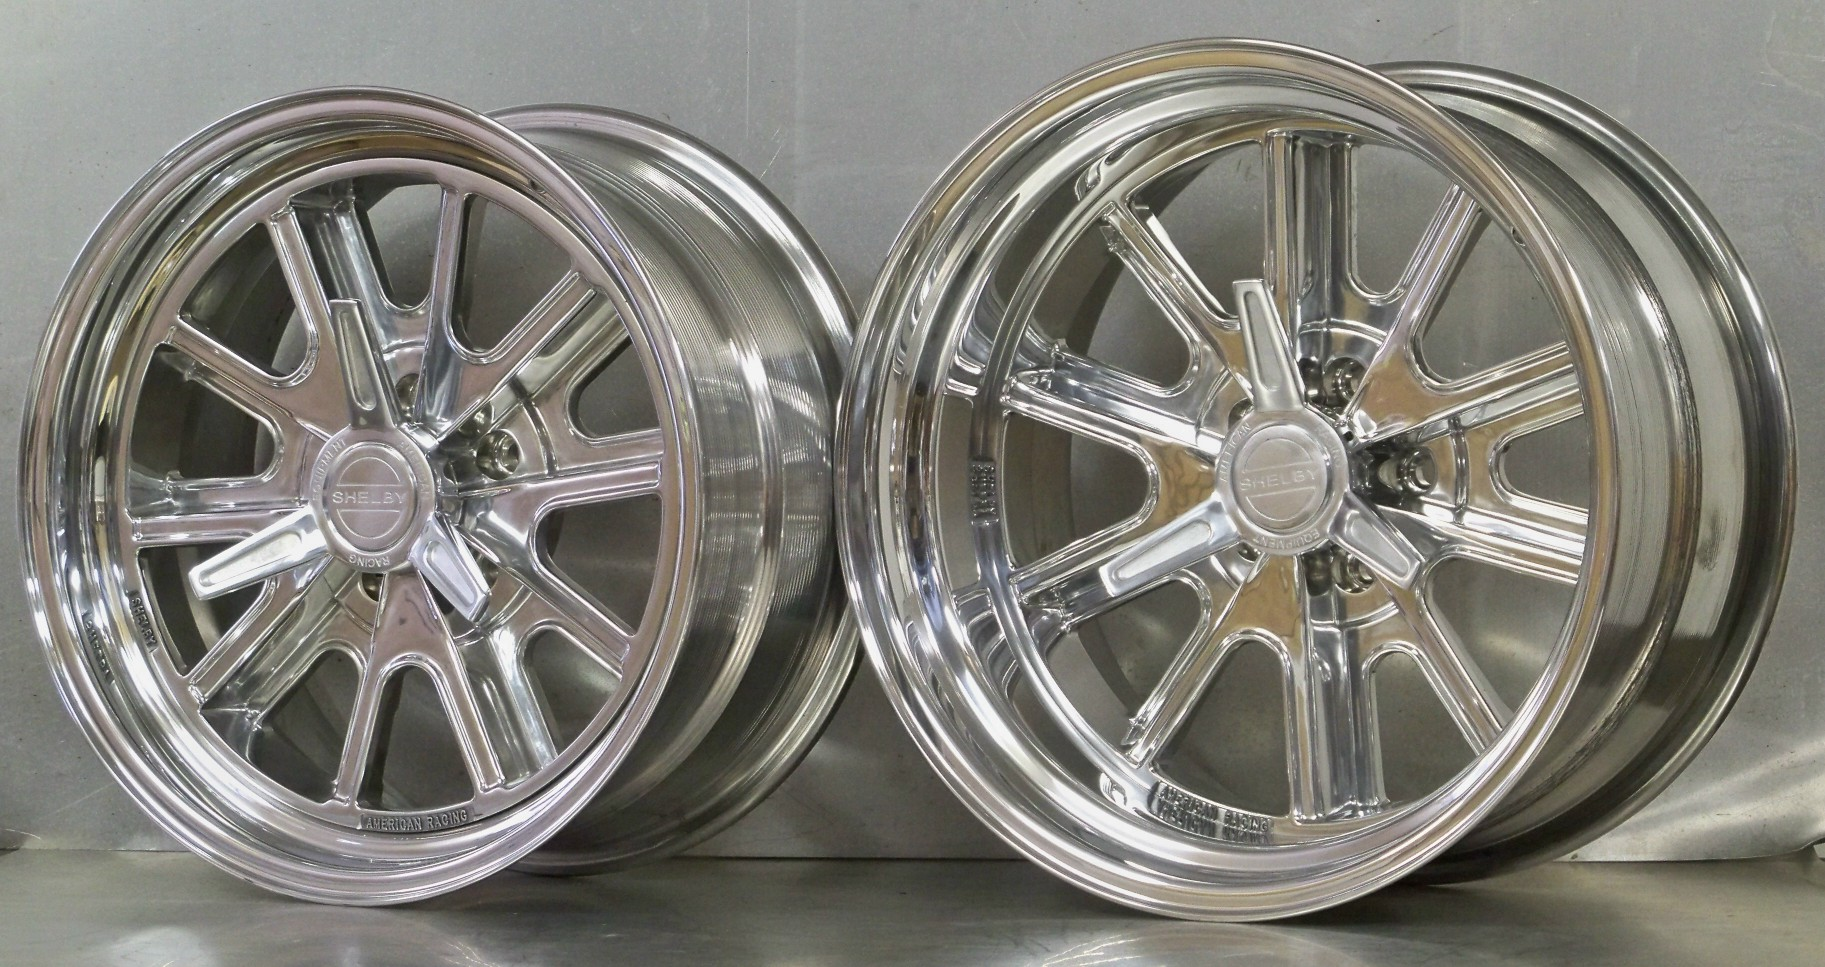 17s 427 Shelby polished 5 lug set of 4 AK 427 Cobra